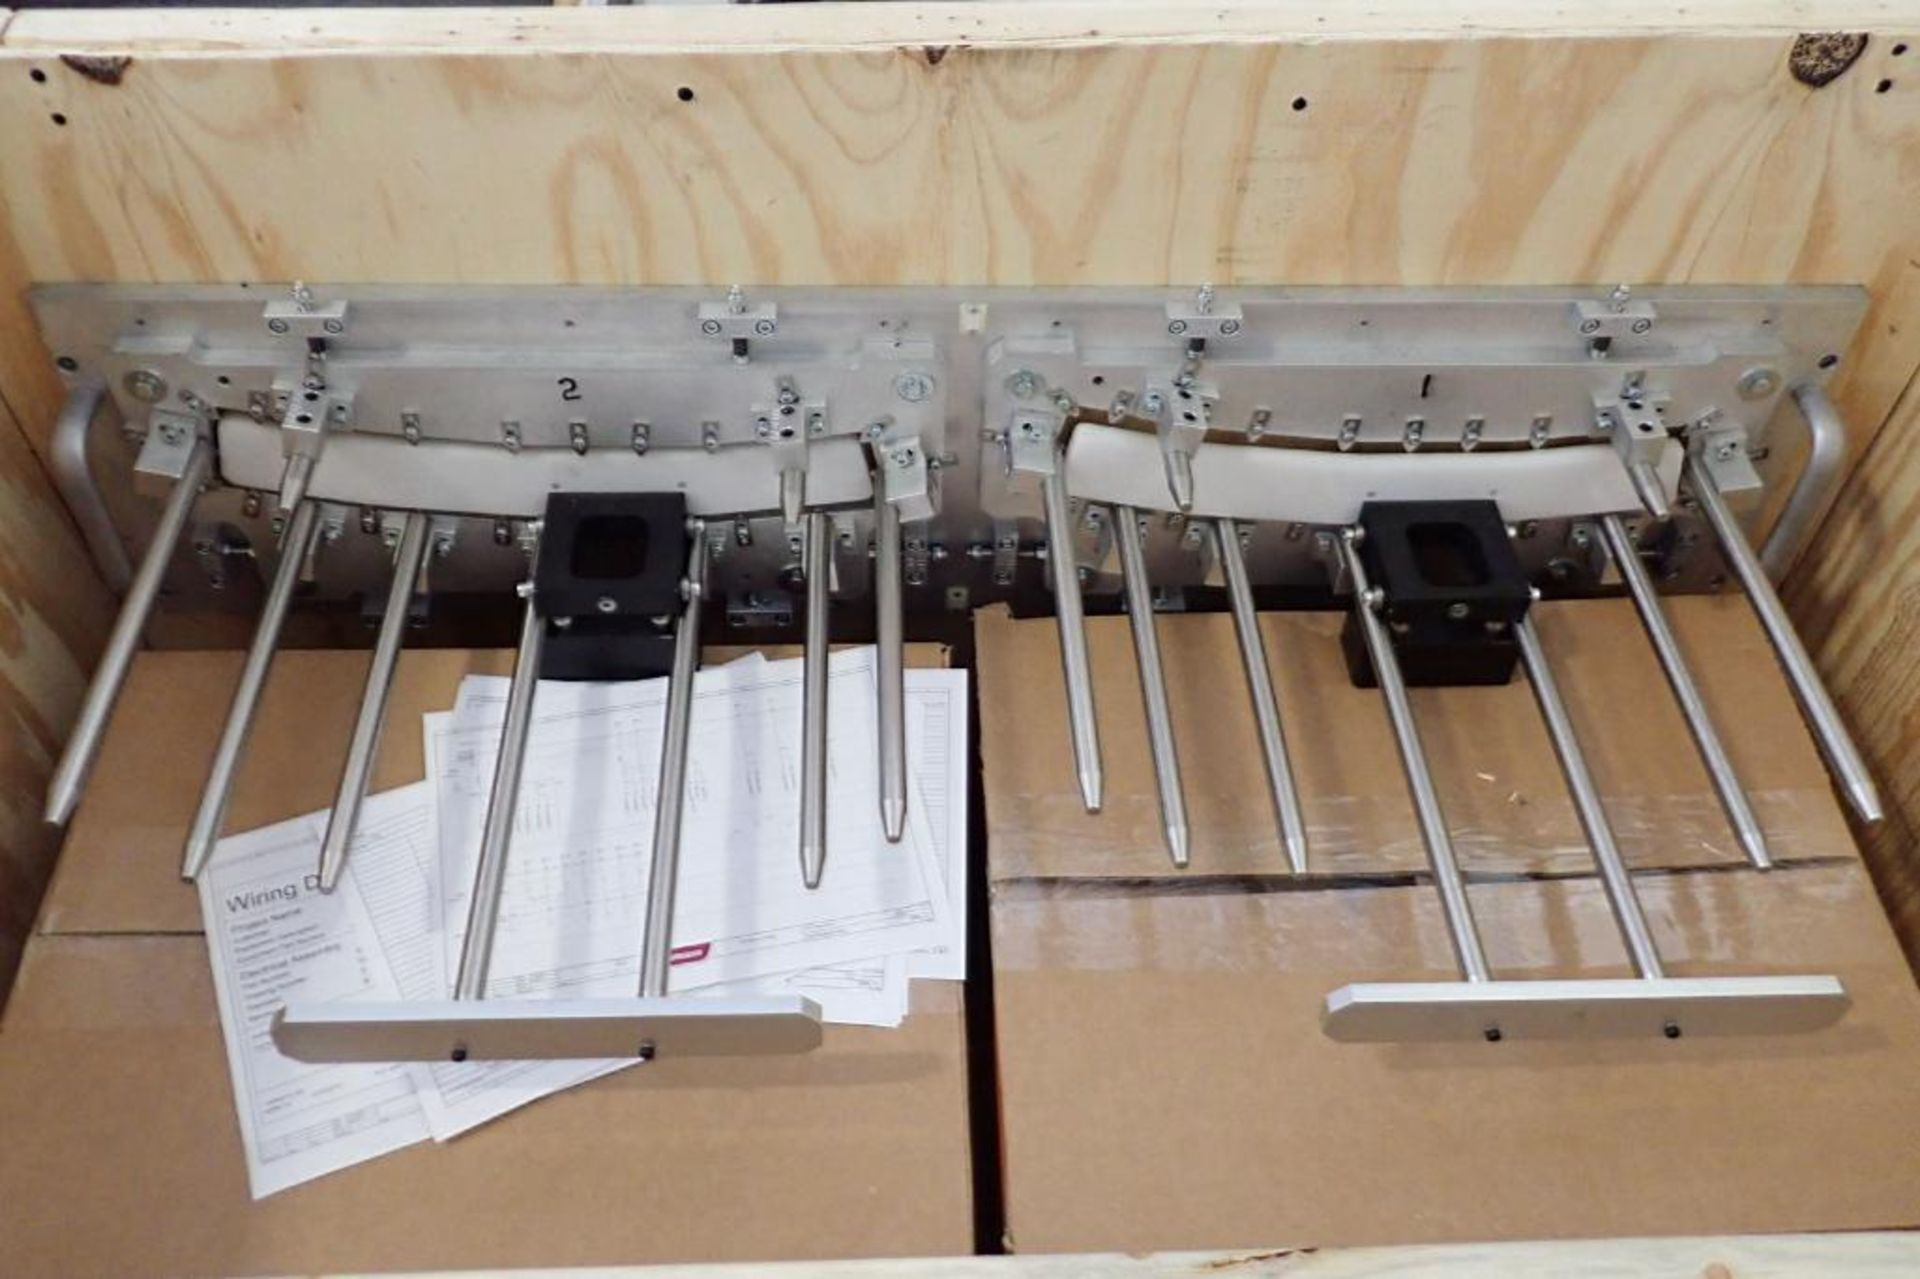 Lot 42A - 2015 Whittmann robotic inter molded label placing system change over parts { Rigging Fee: $50}